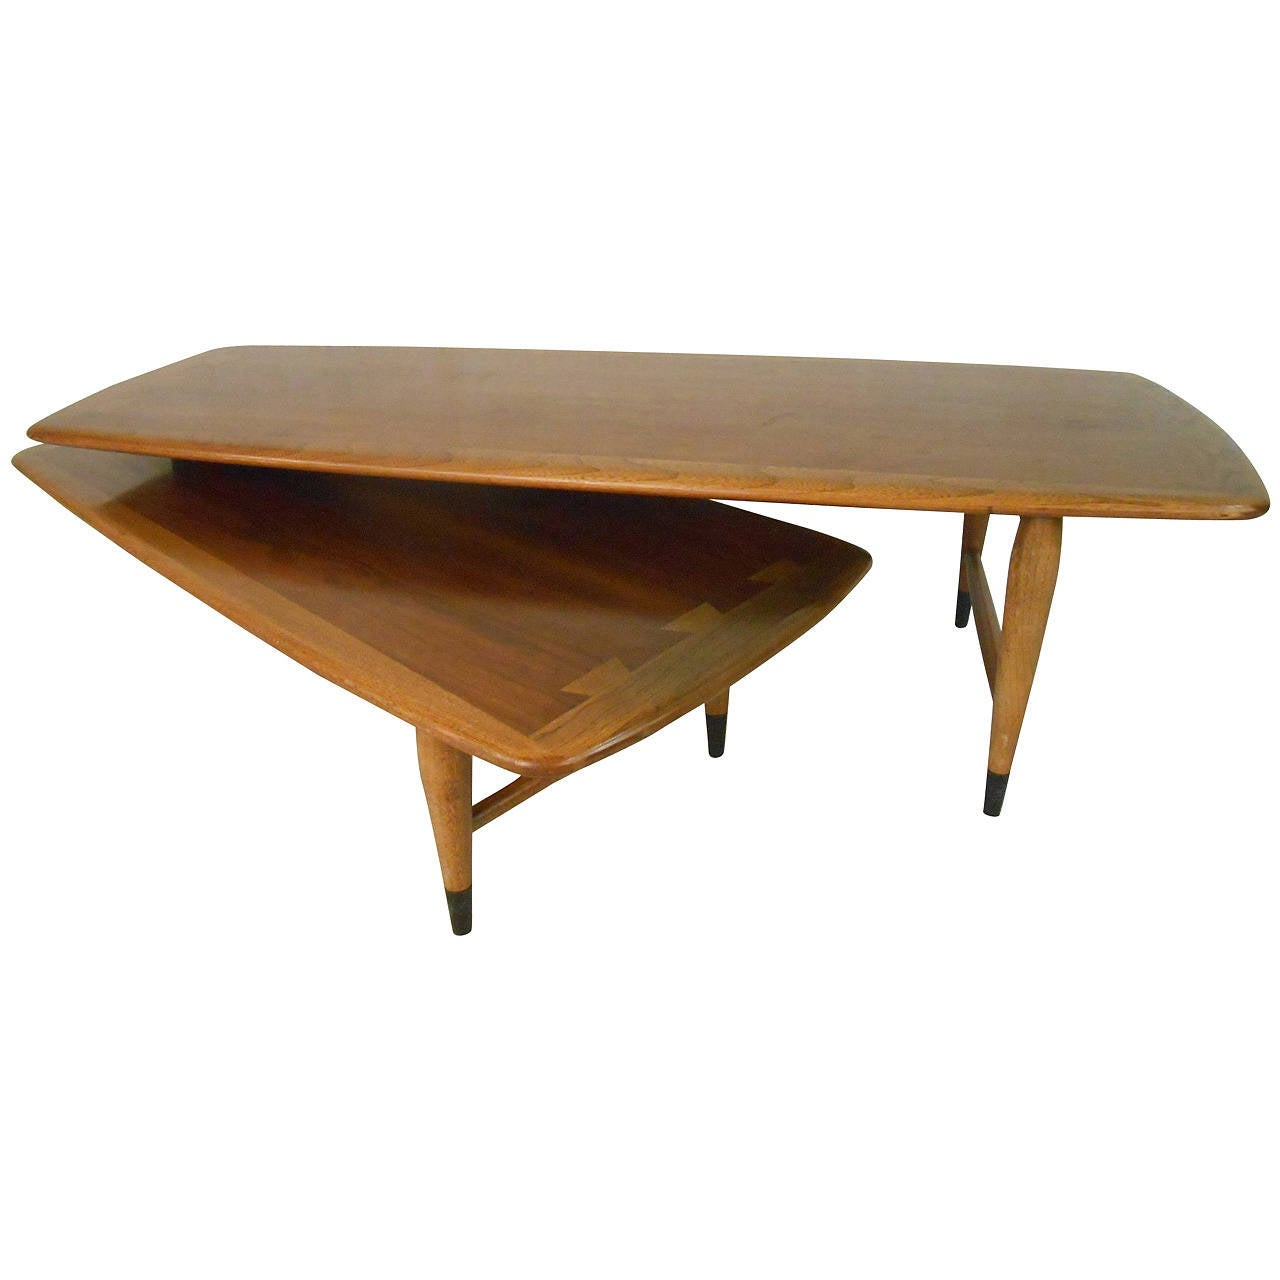 pivoting lane coffee table at 1stdibs. Black Bedroom Furniture Sets. Home Design Ideas